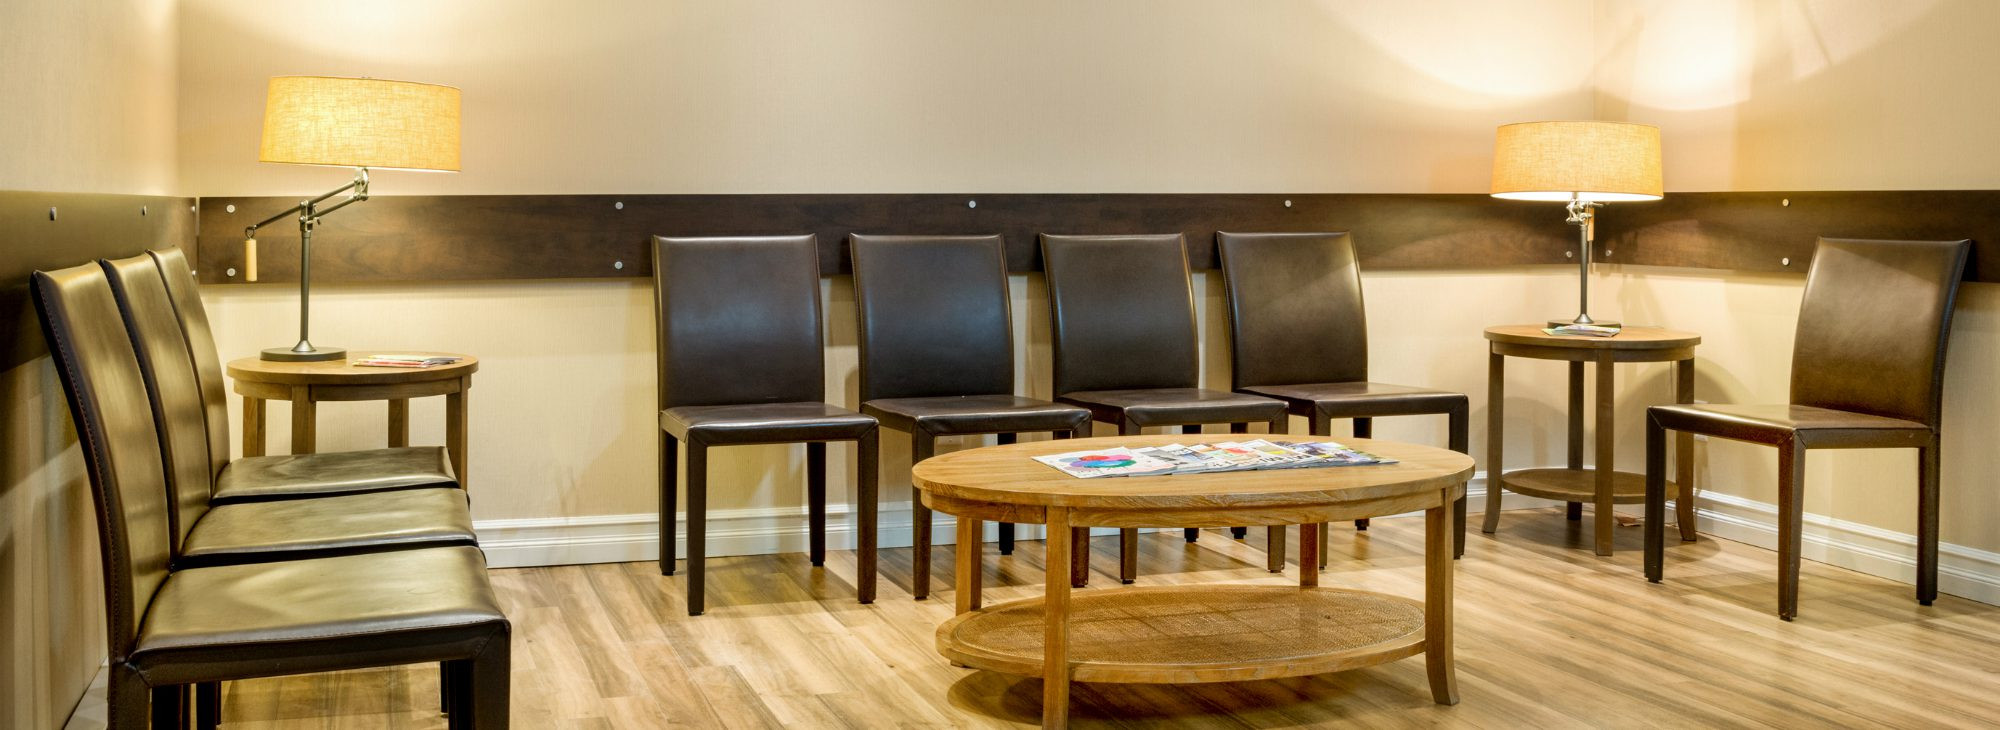 weston hardwood flooring vaughan of oral surgery brampton on oral surgeon regarding waiting room 1 2000x730